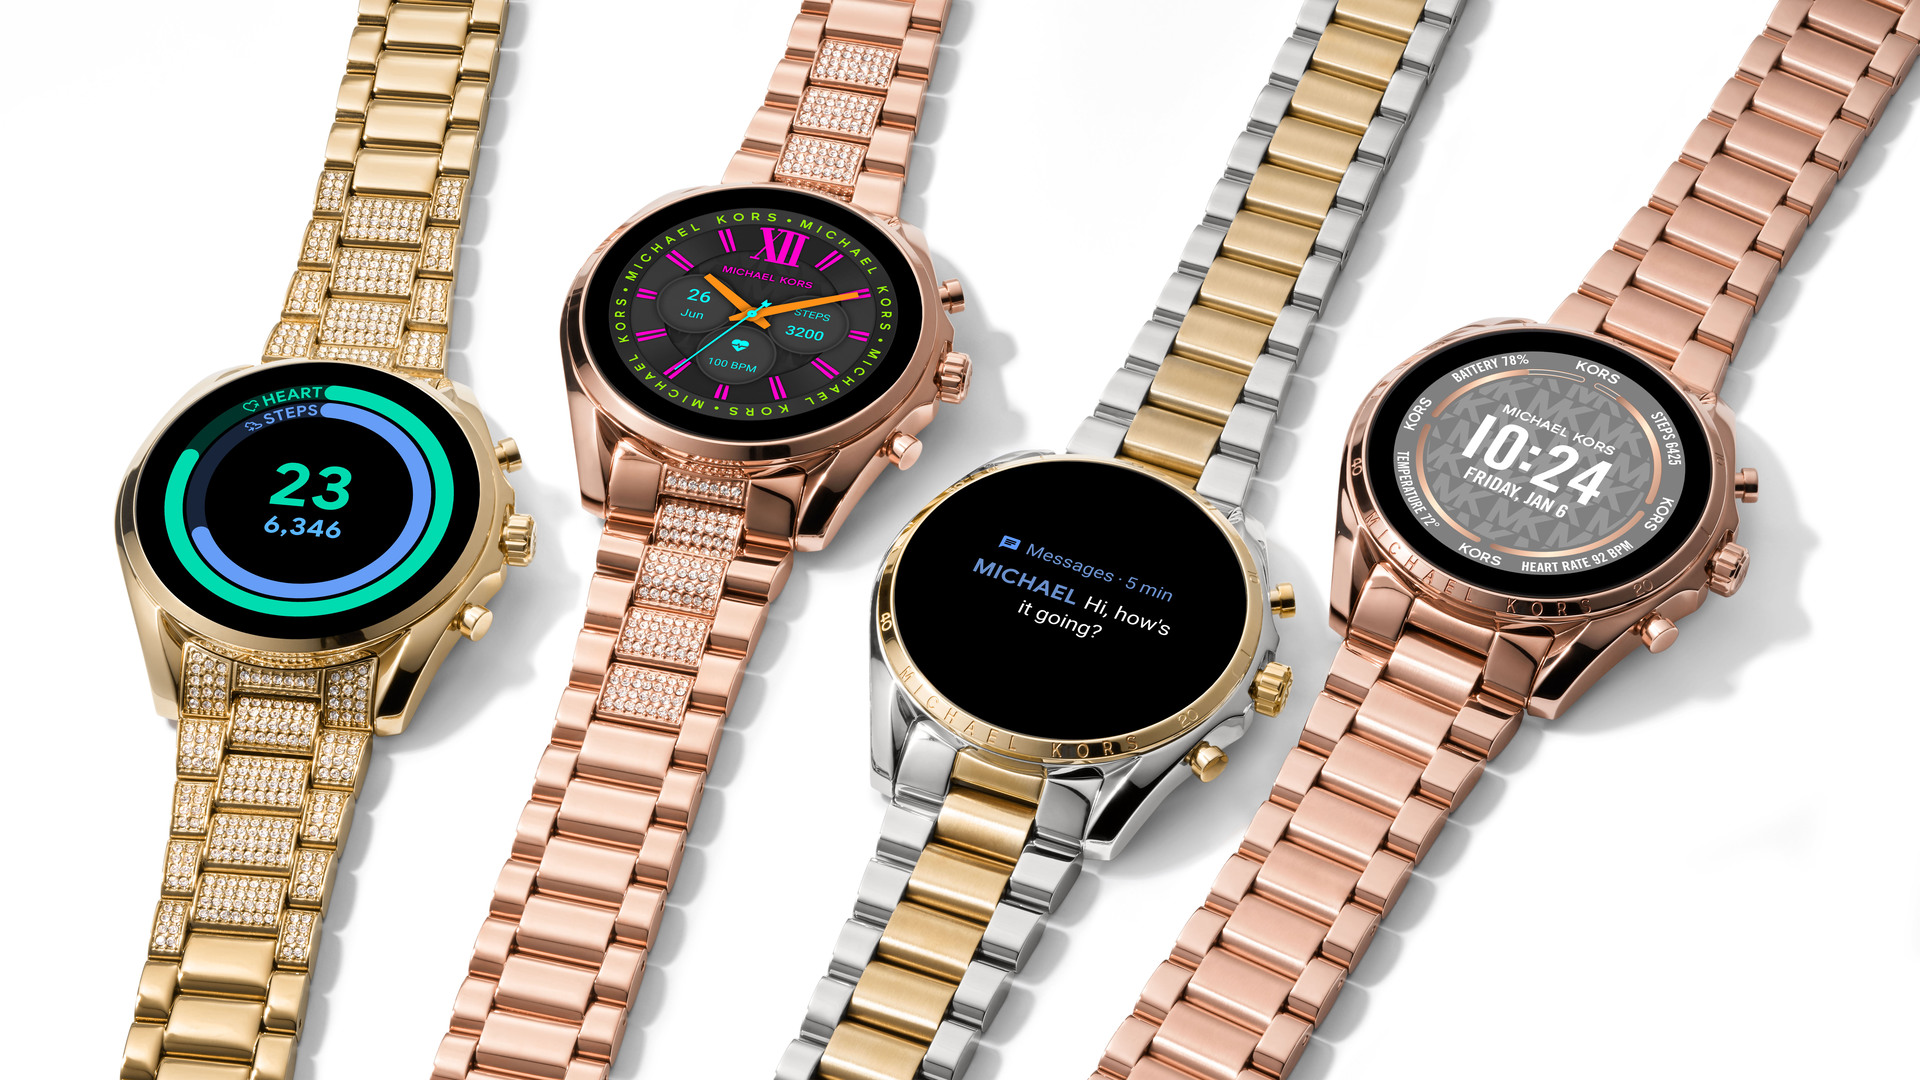 The Michael Kors Gen 6 smartwatch family lying flat on a table.